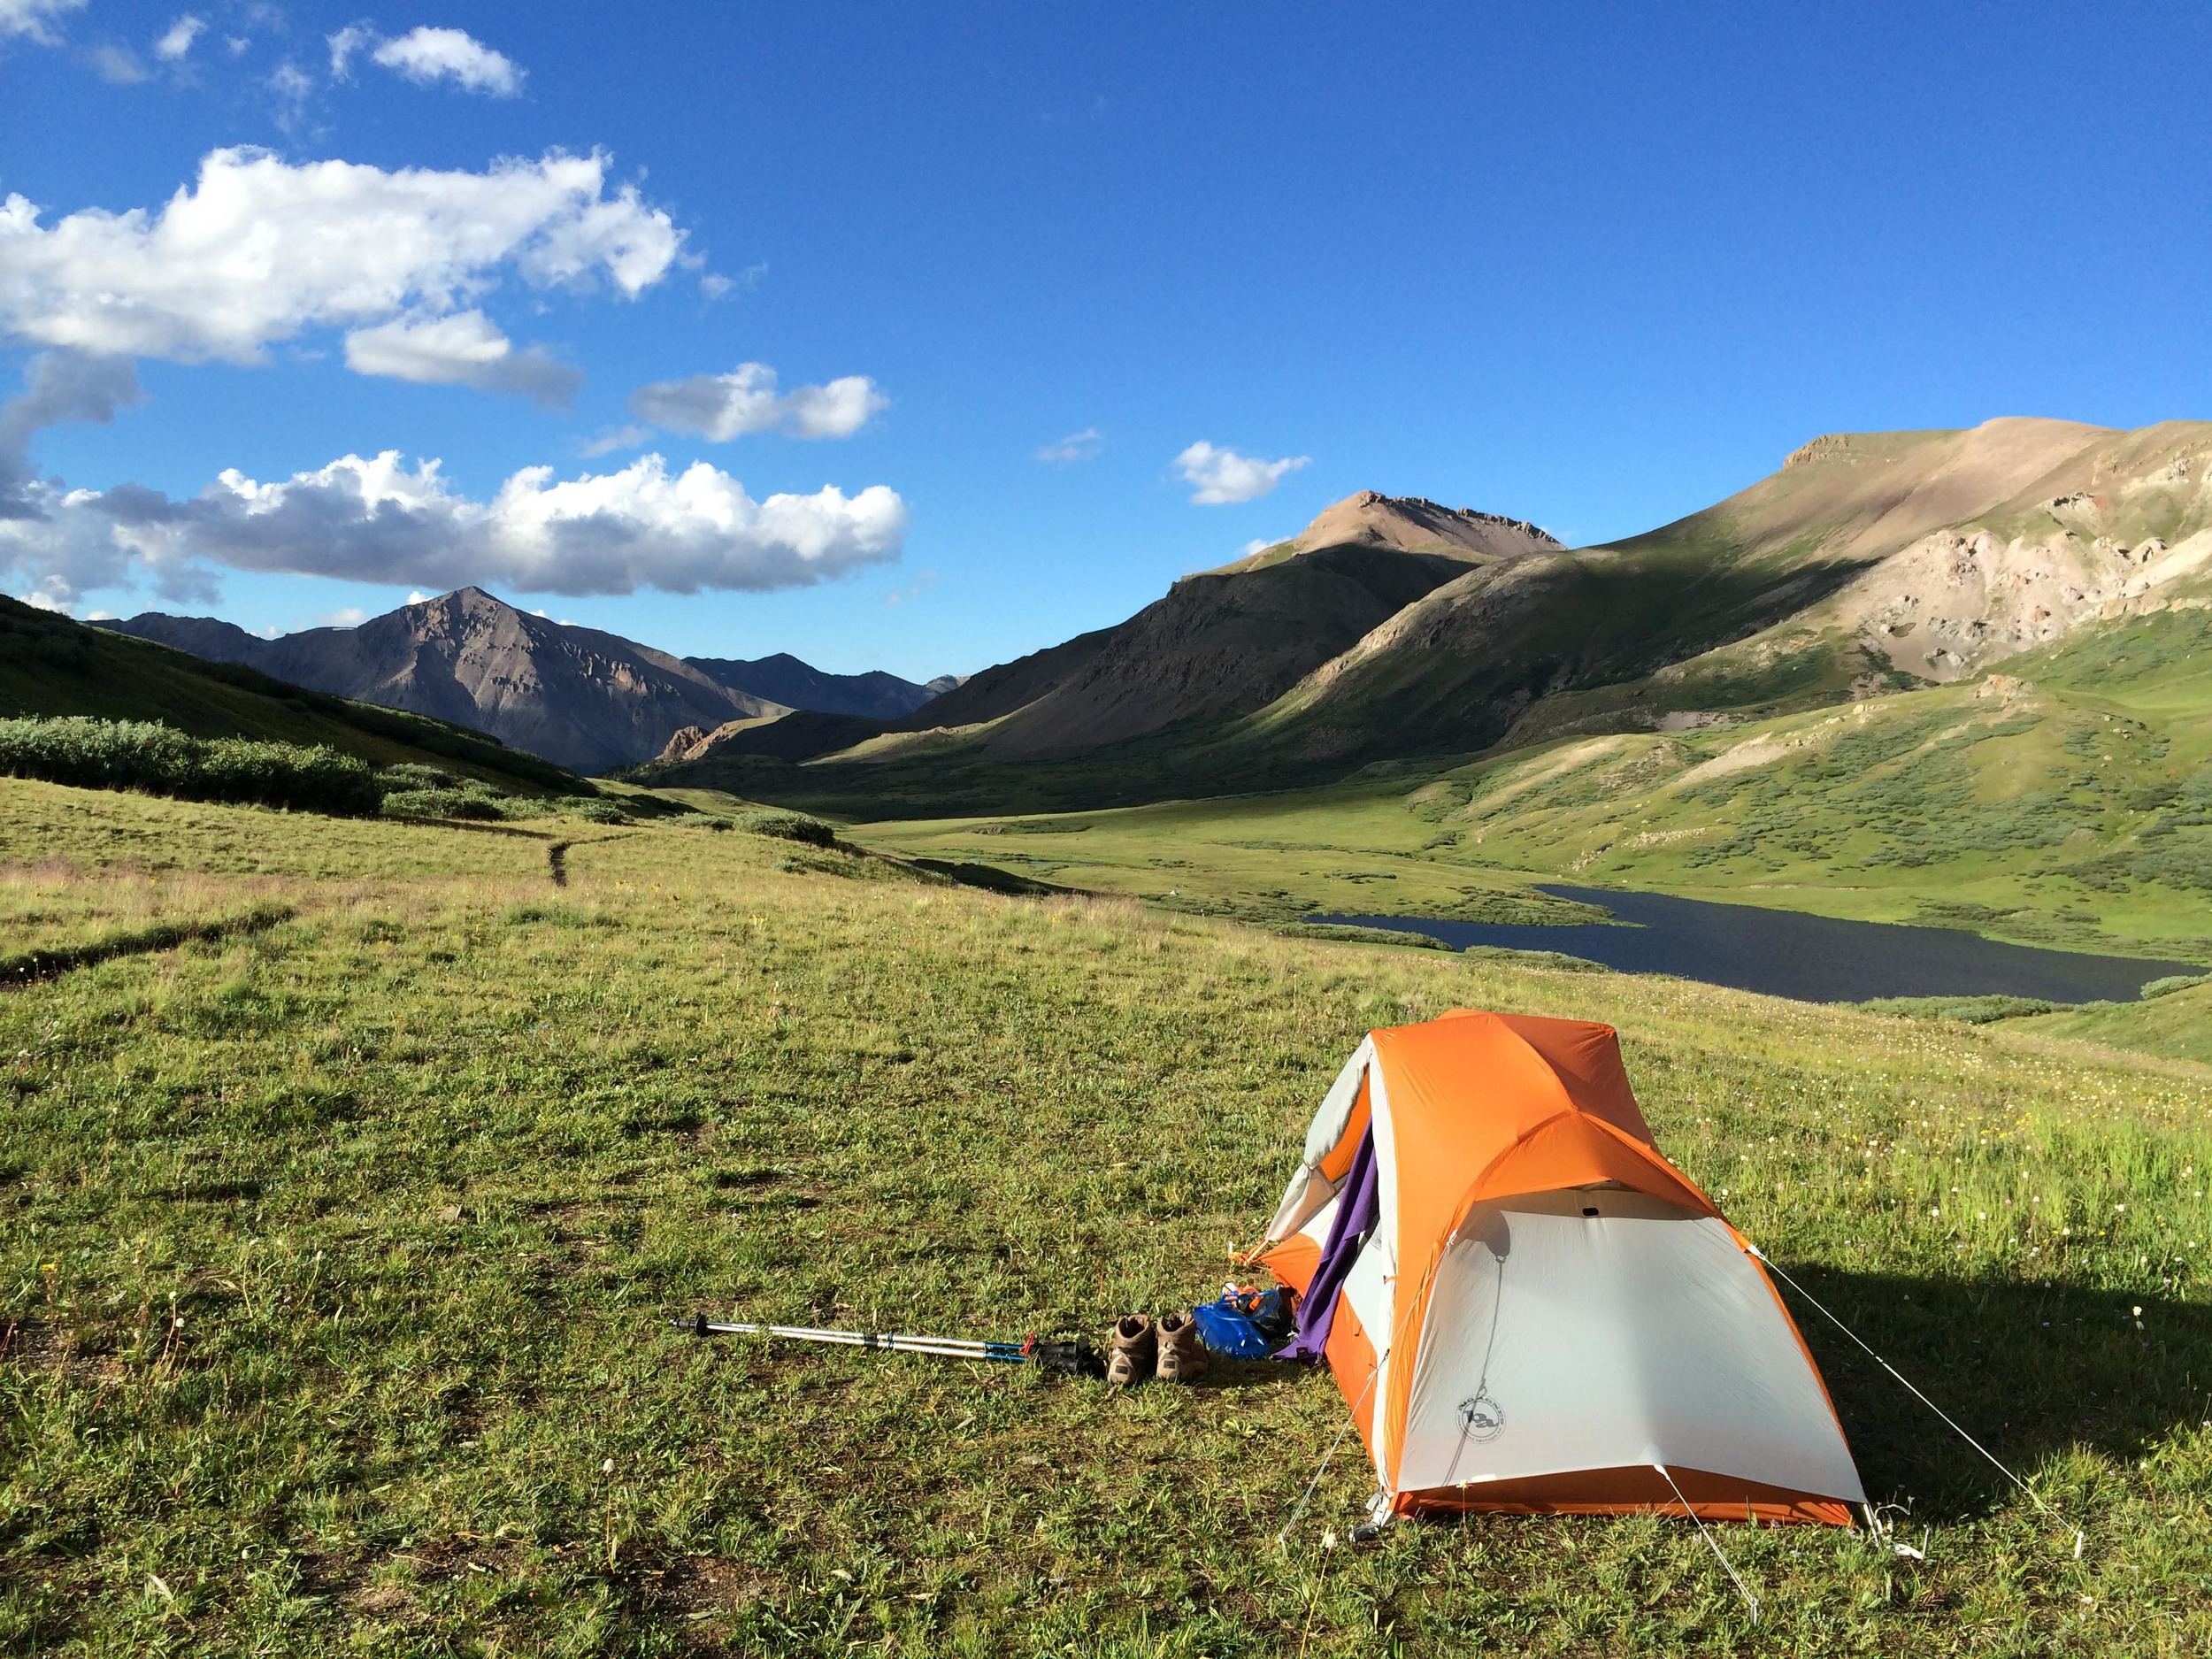 Campsite near Cataract Lake. PHOTO BY WILLOW BELDEN